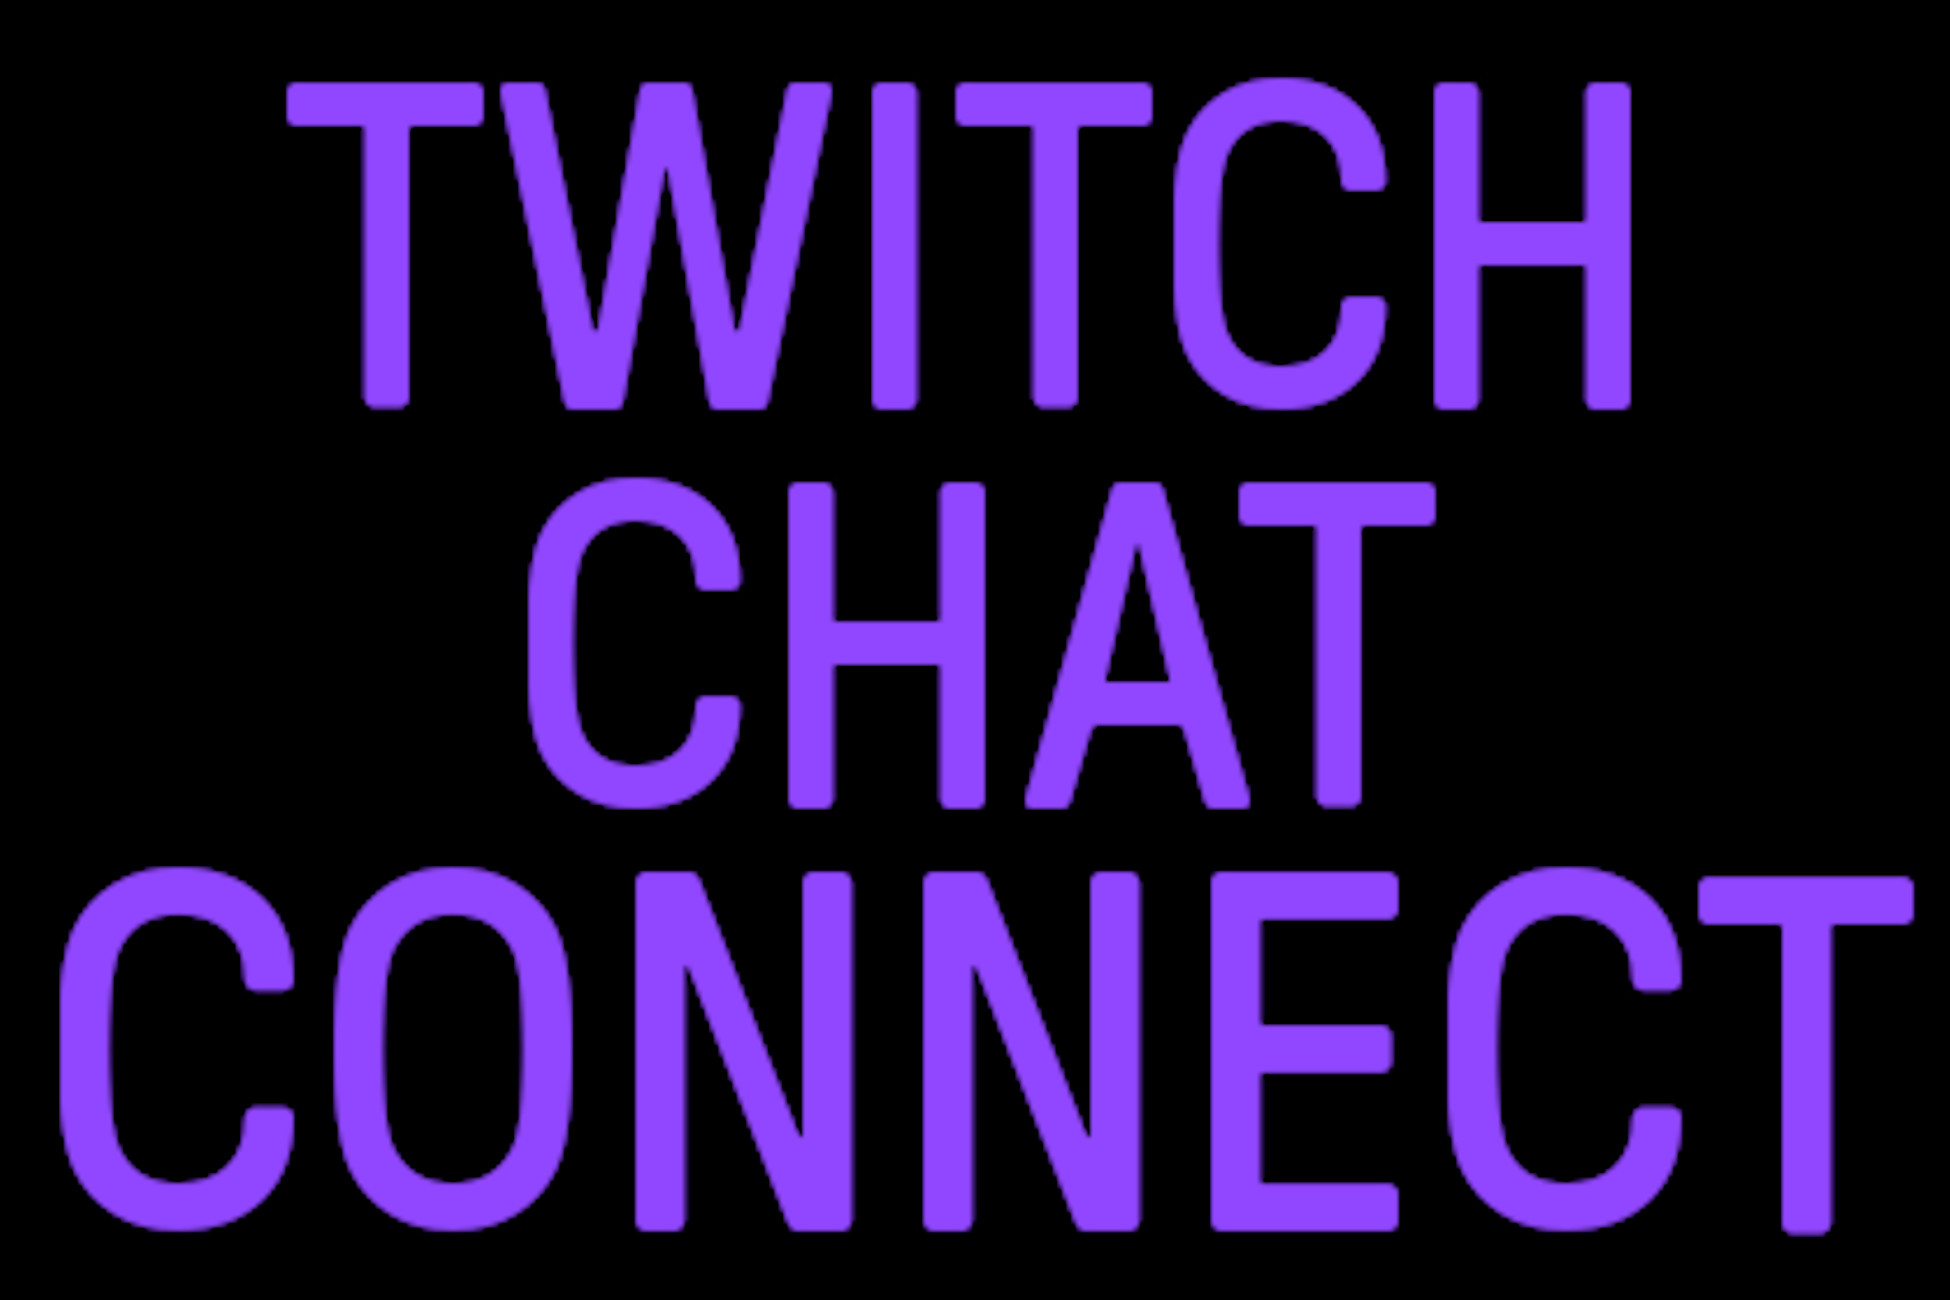 Twitch Chat Connect